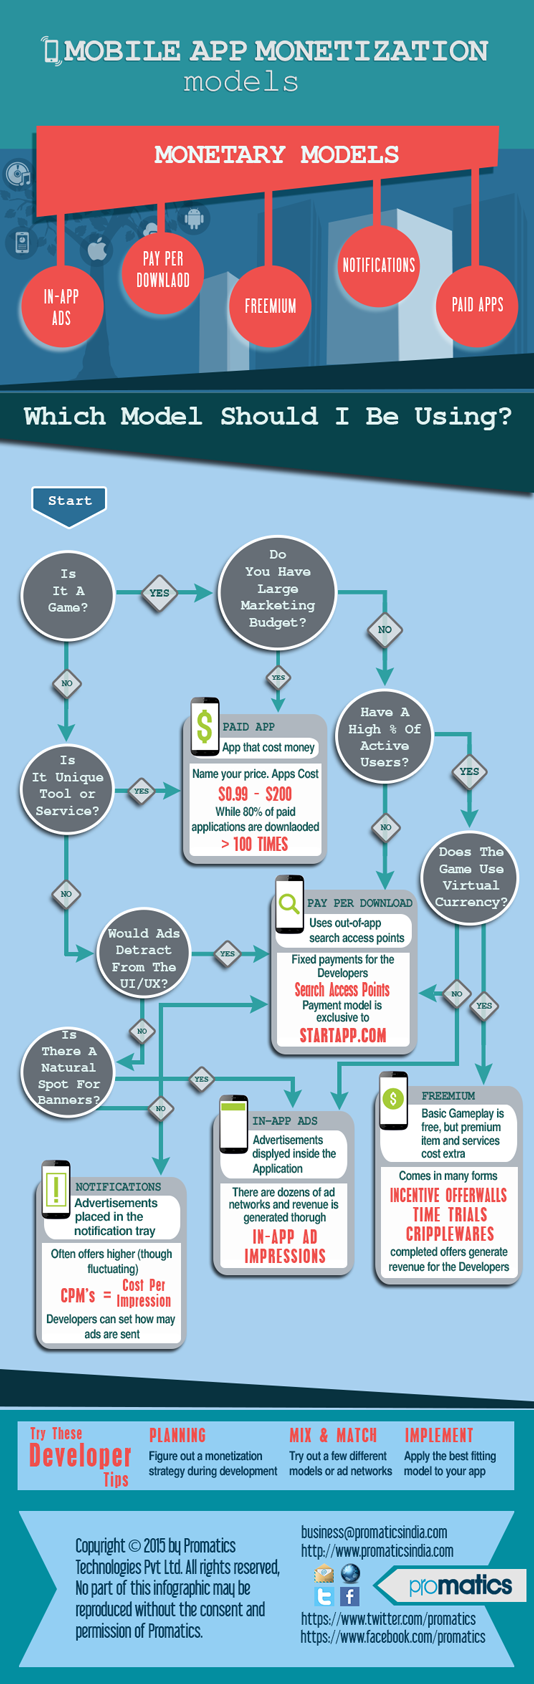 Strategy For Successful Mobile App Monetization